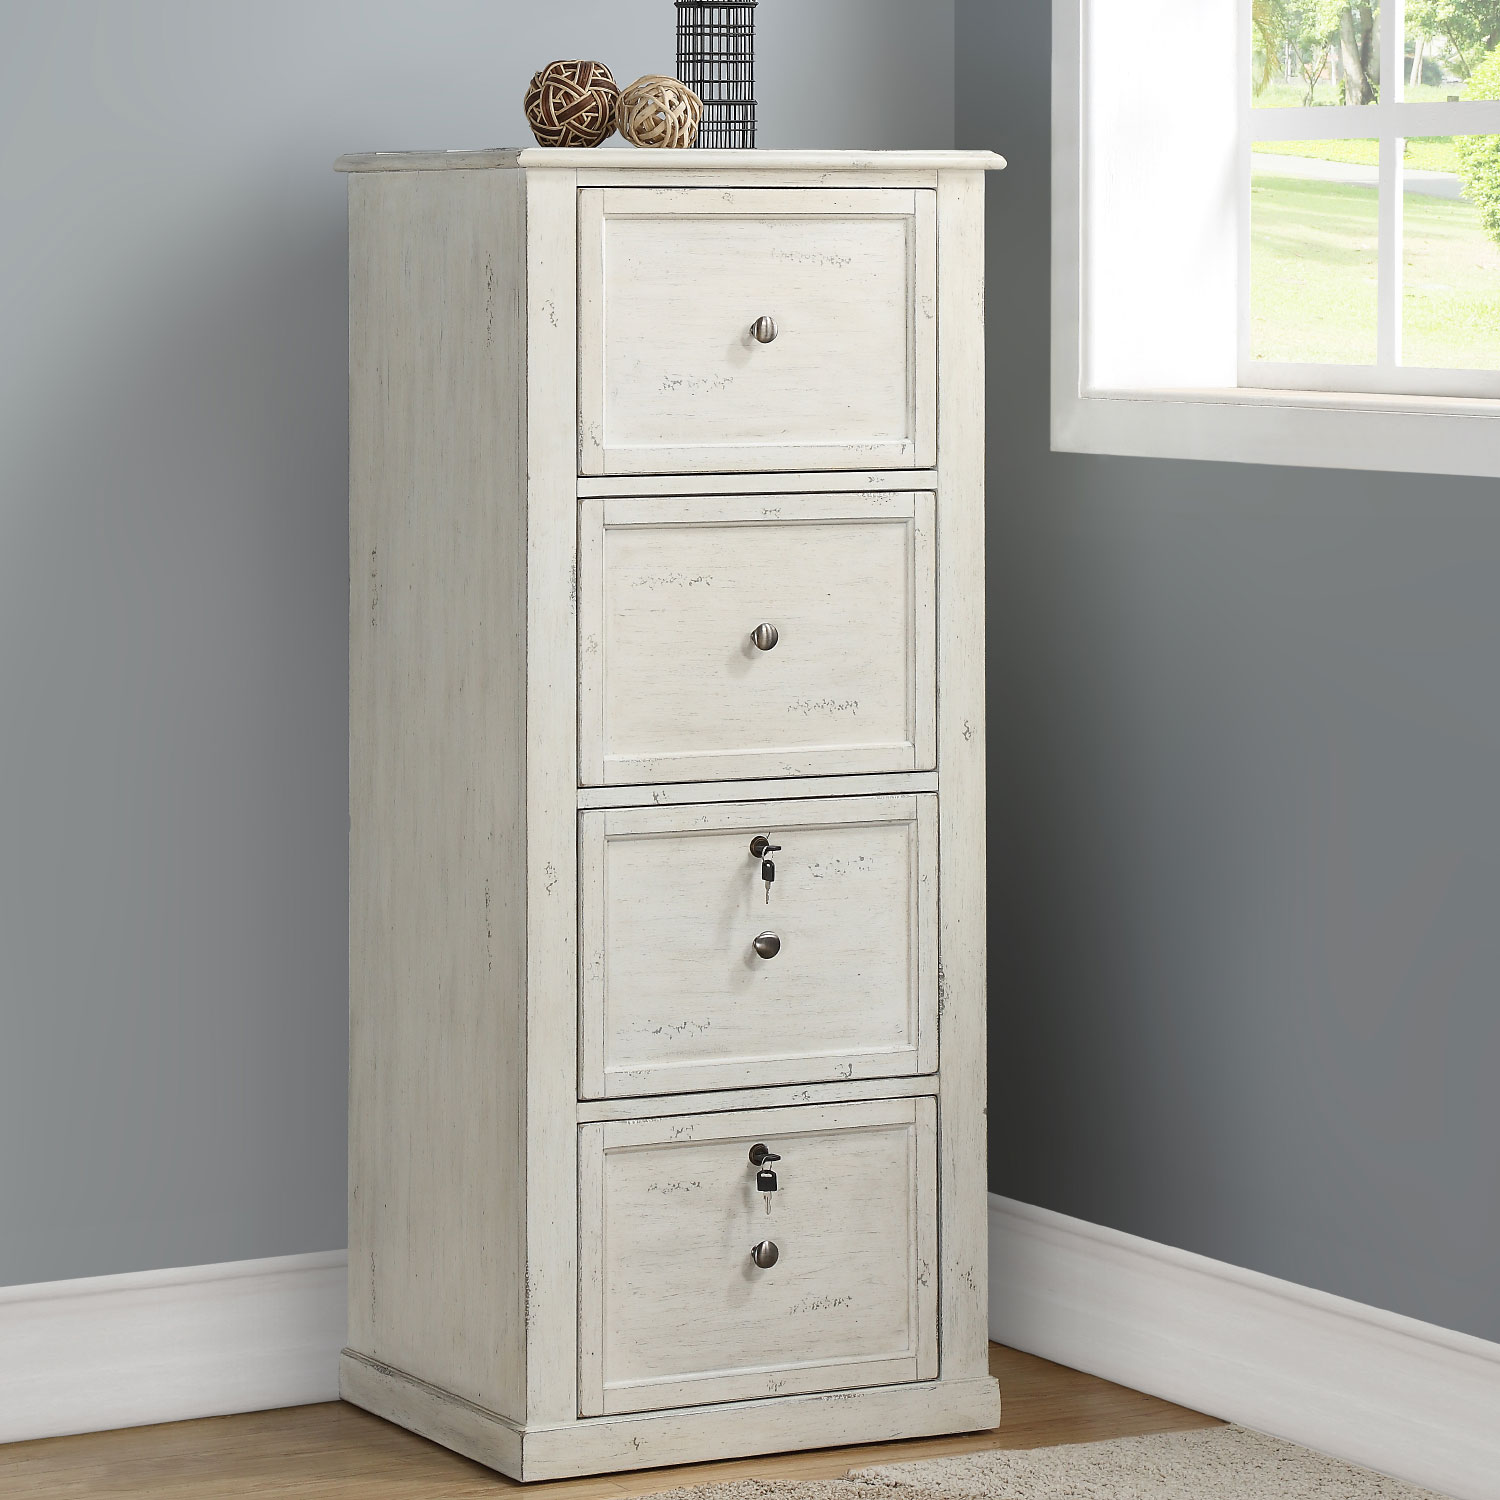 Tall File Cabinet In Antique